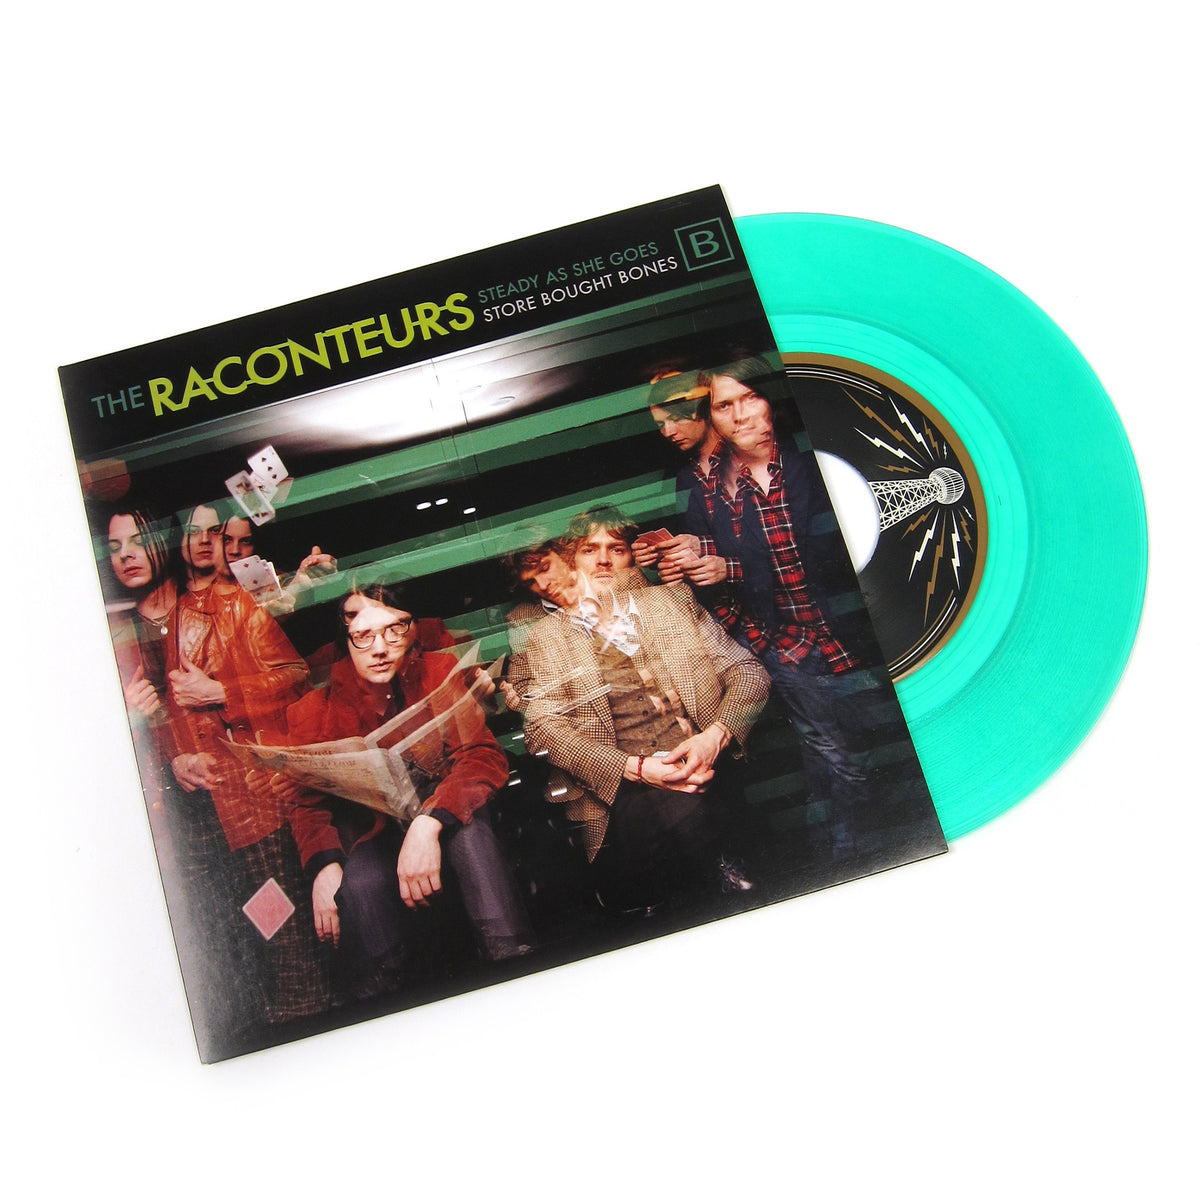 "The Raconteurs: Steady, As She Goes / Store Bought Bones (Colored Vinyl) Vinyl 7"" (Record Store Day)"